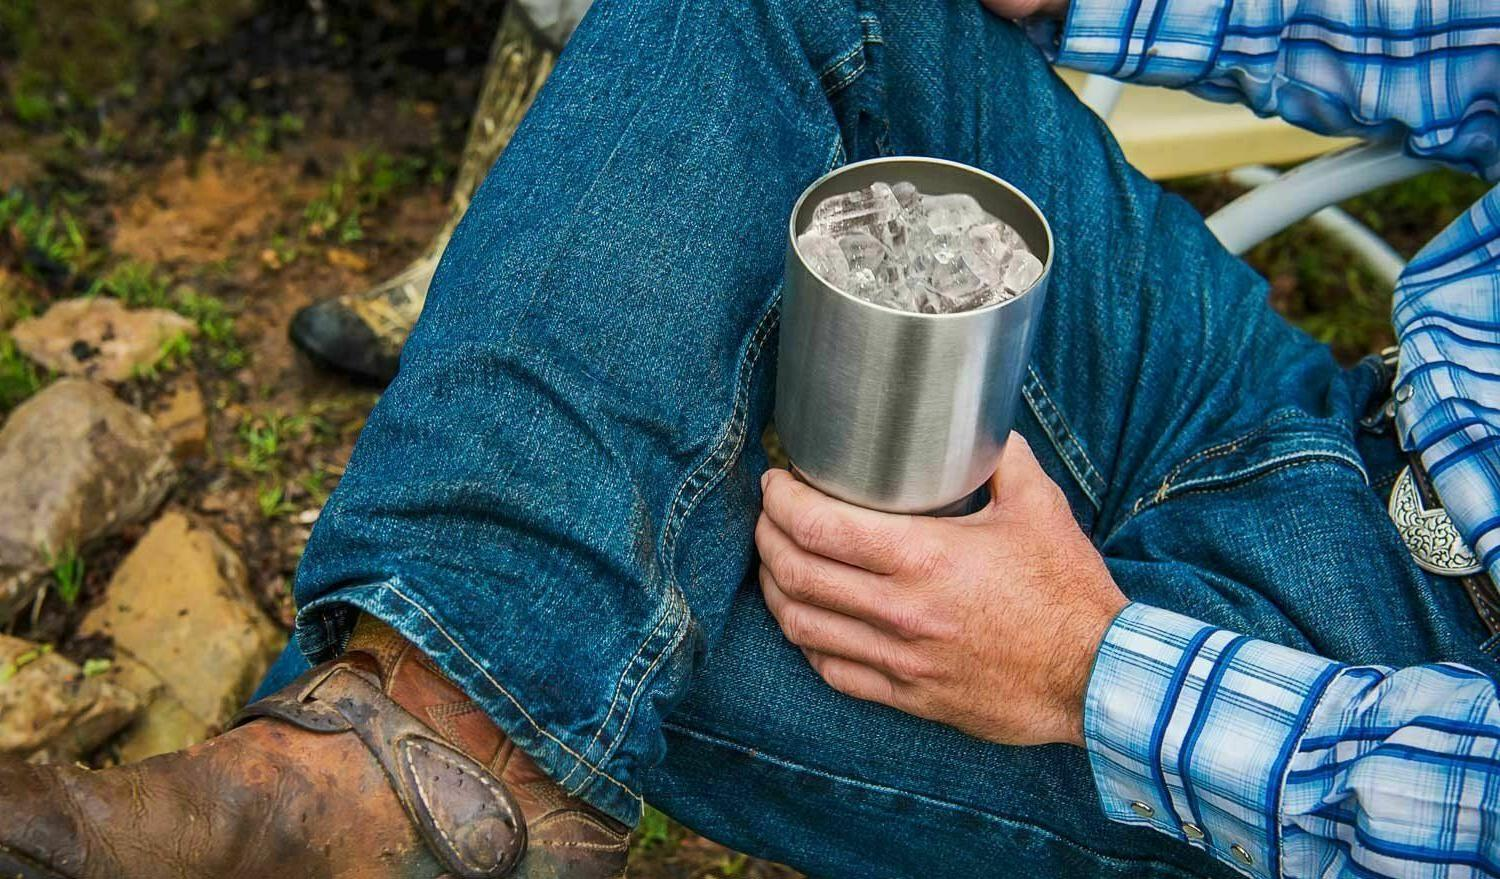 Stainless Steel 30 oz Travel Gift